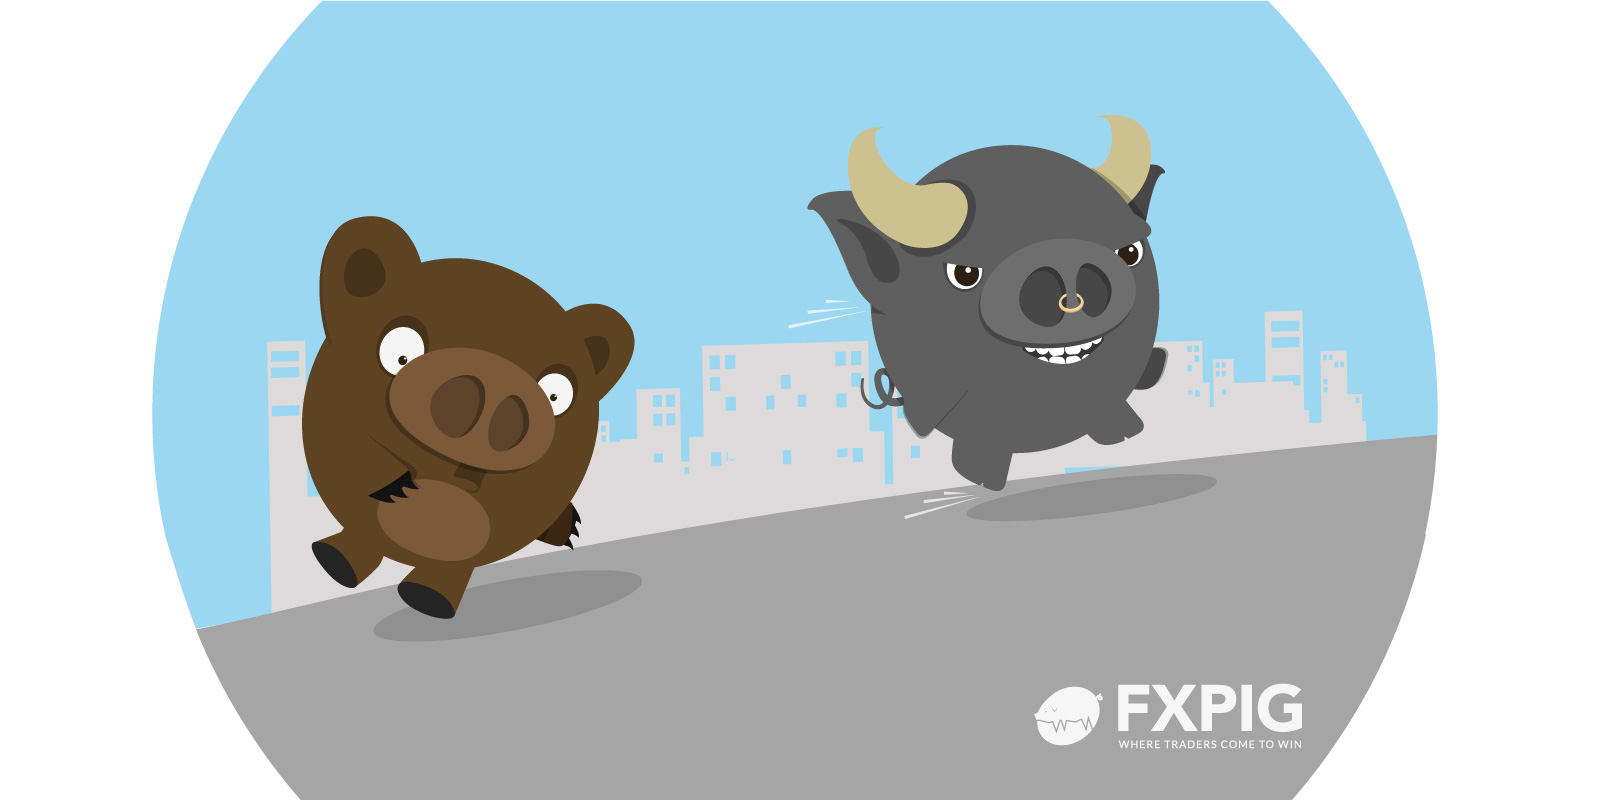 Forex_Trading_Fx_Trader_FXPIG_Tech-analysis_Tech-Targets_Bulls-and-bears-13.01.2019